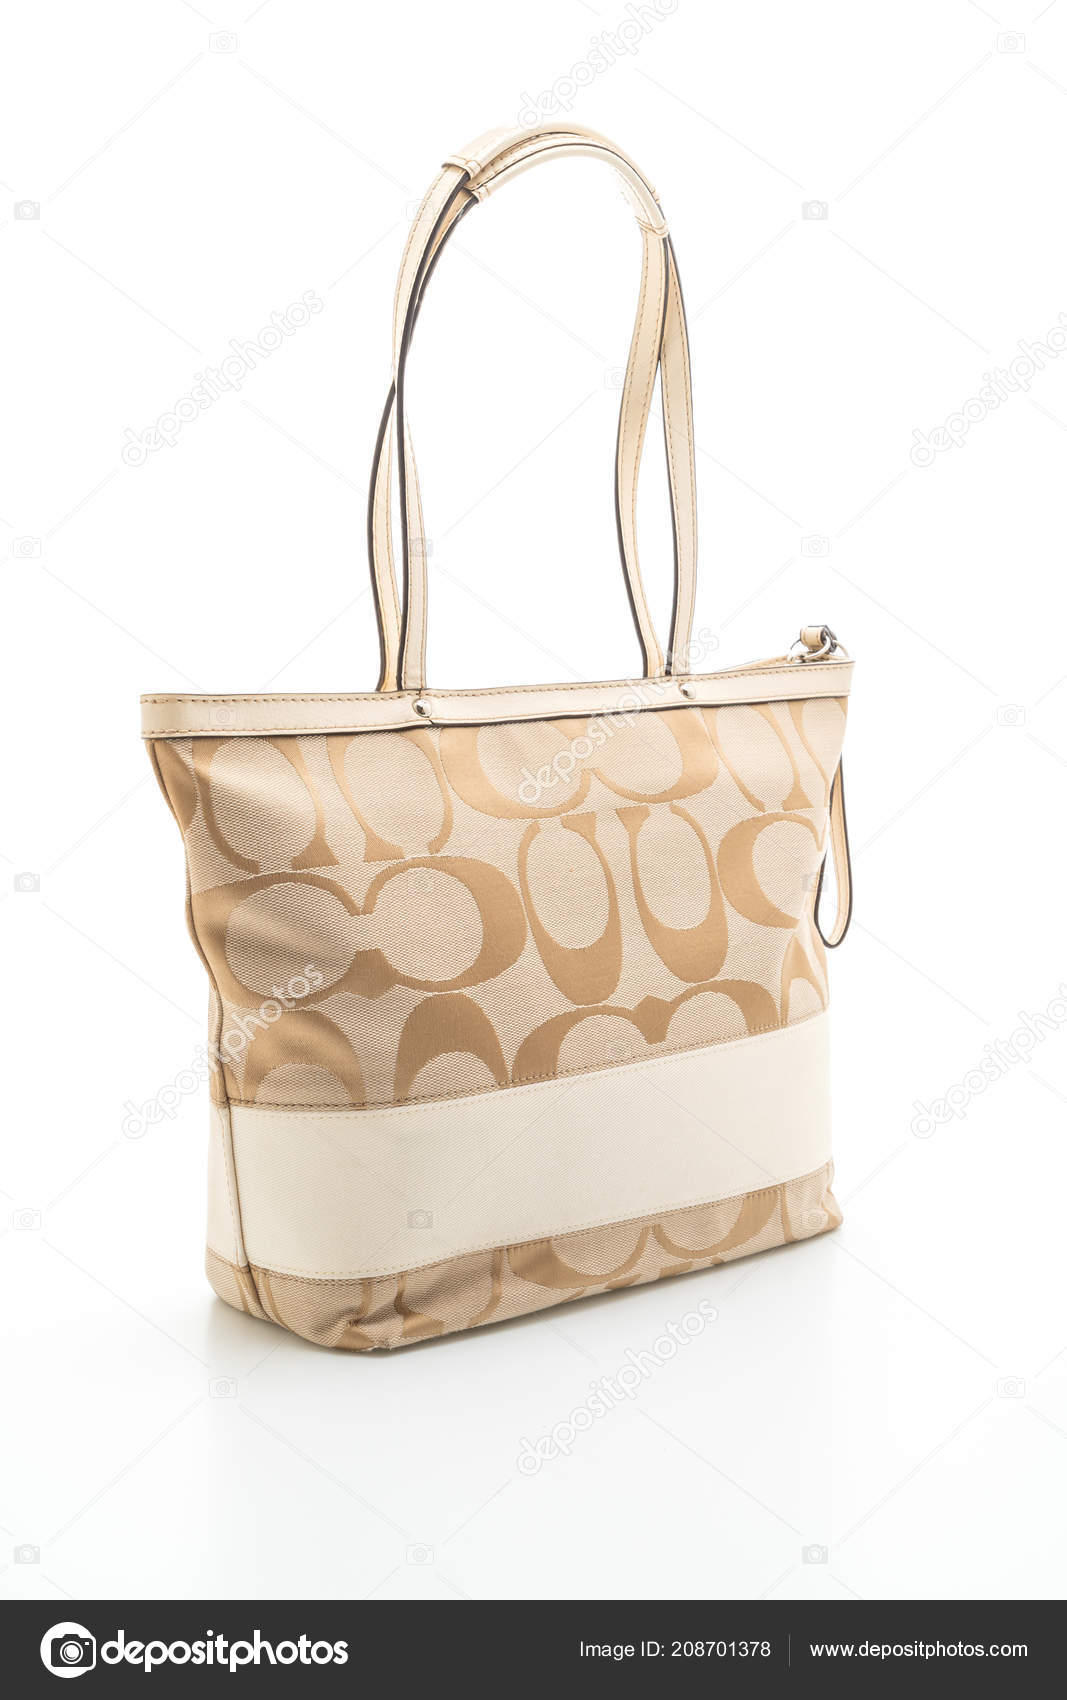 78bce402456b Bangkok Thailand July 2018 Coach Bag Isolated White Background. Thaivisa  Classifieds Leather Handbag Michael Kors Articles Misc Clothing Shoes  Apparel ...